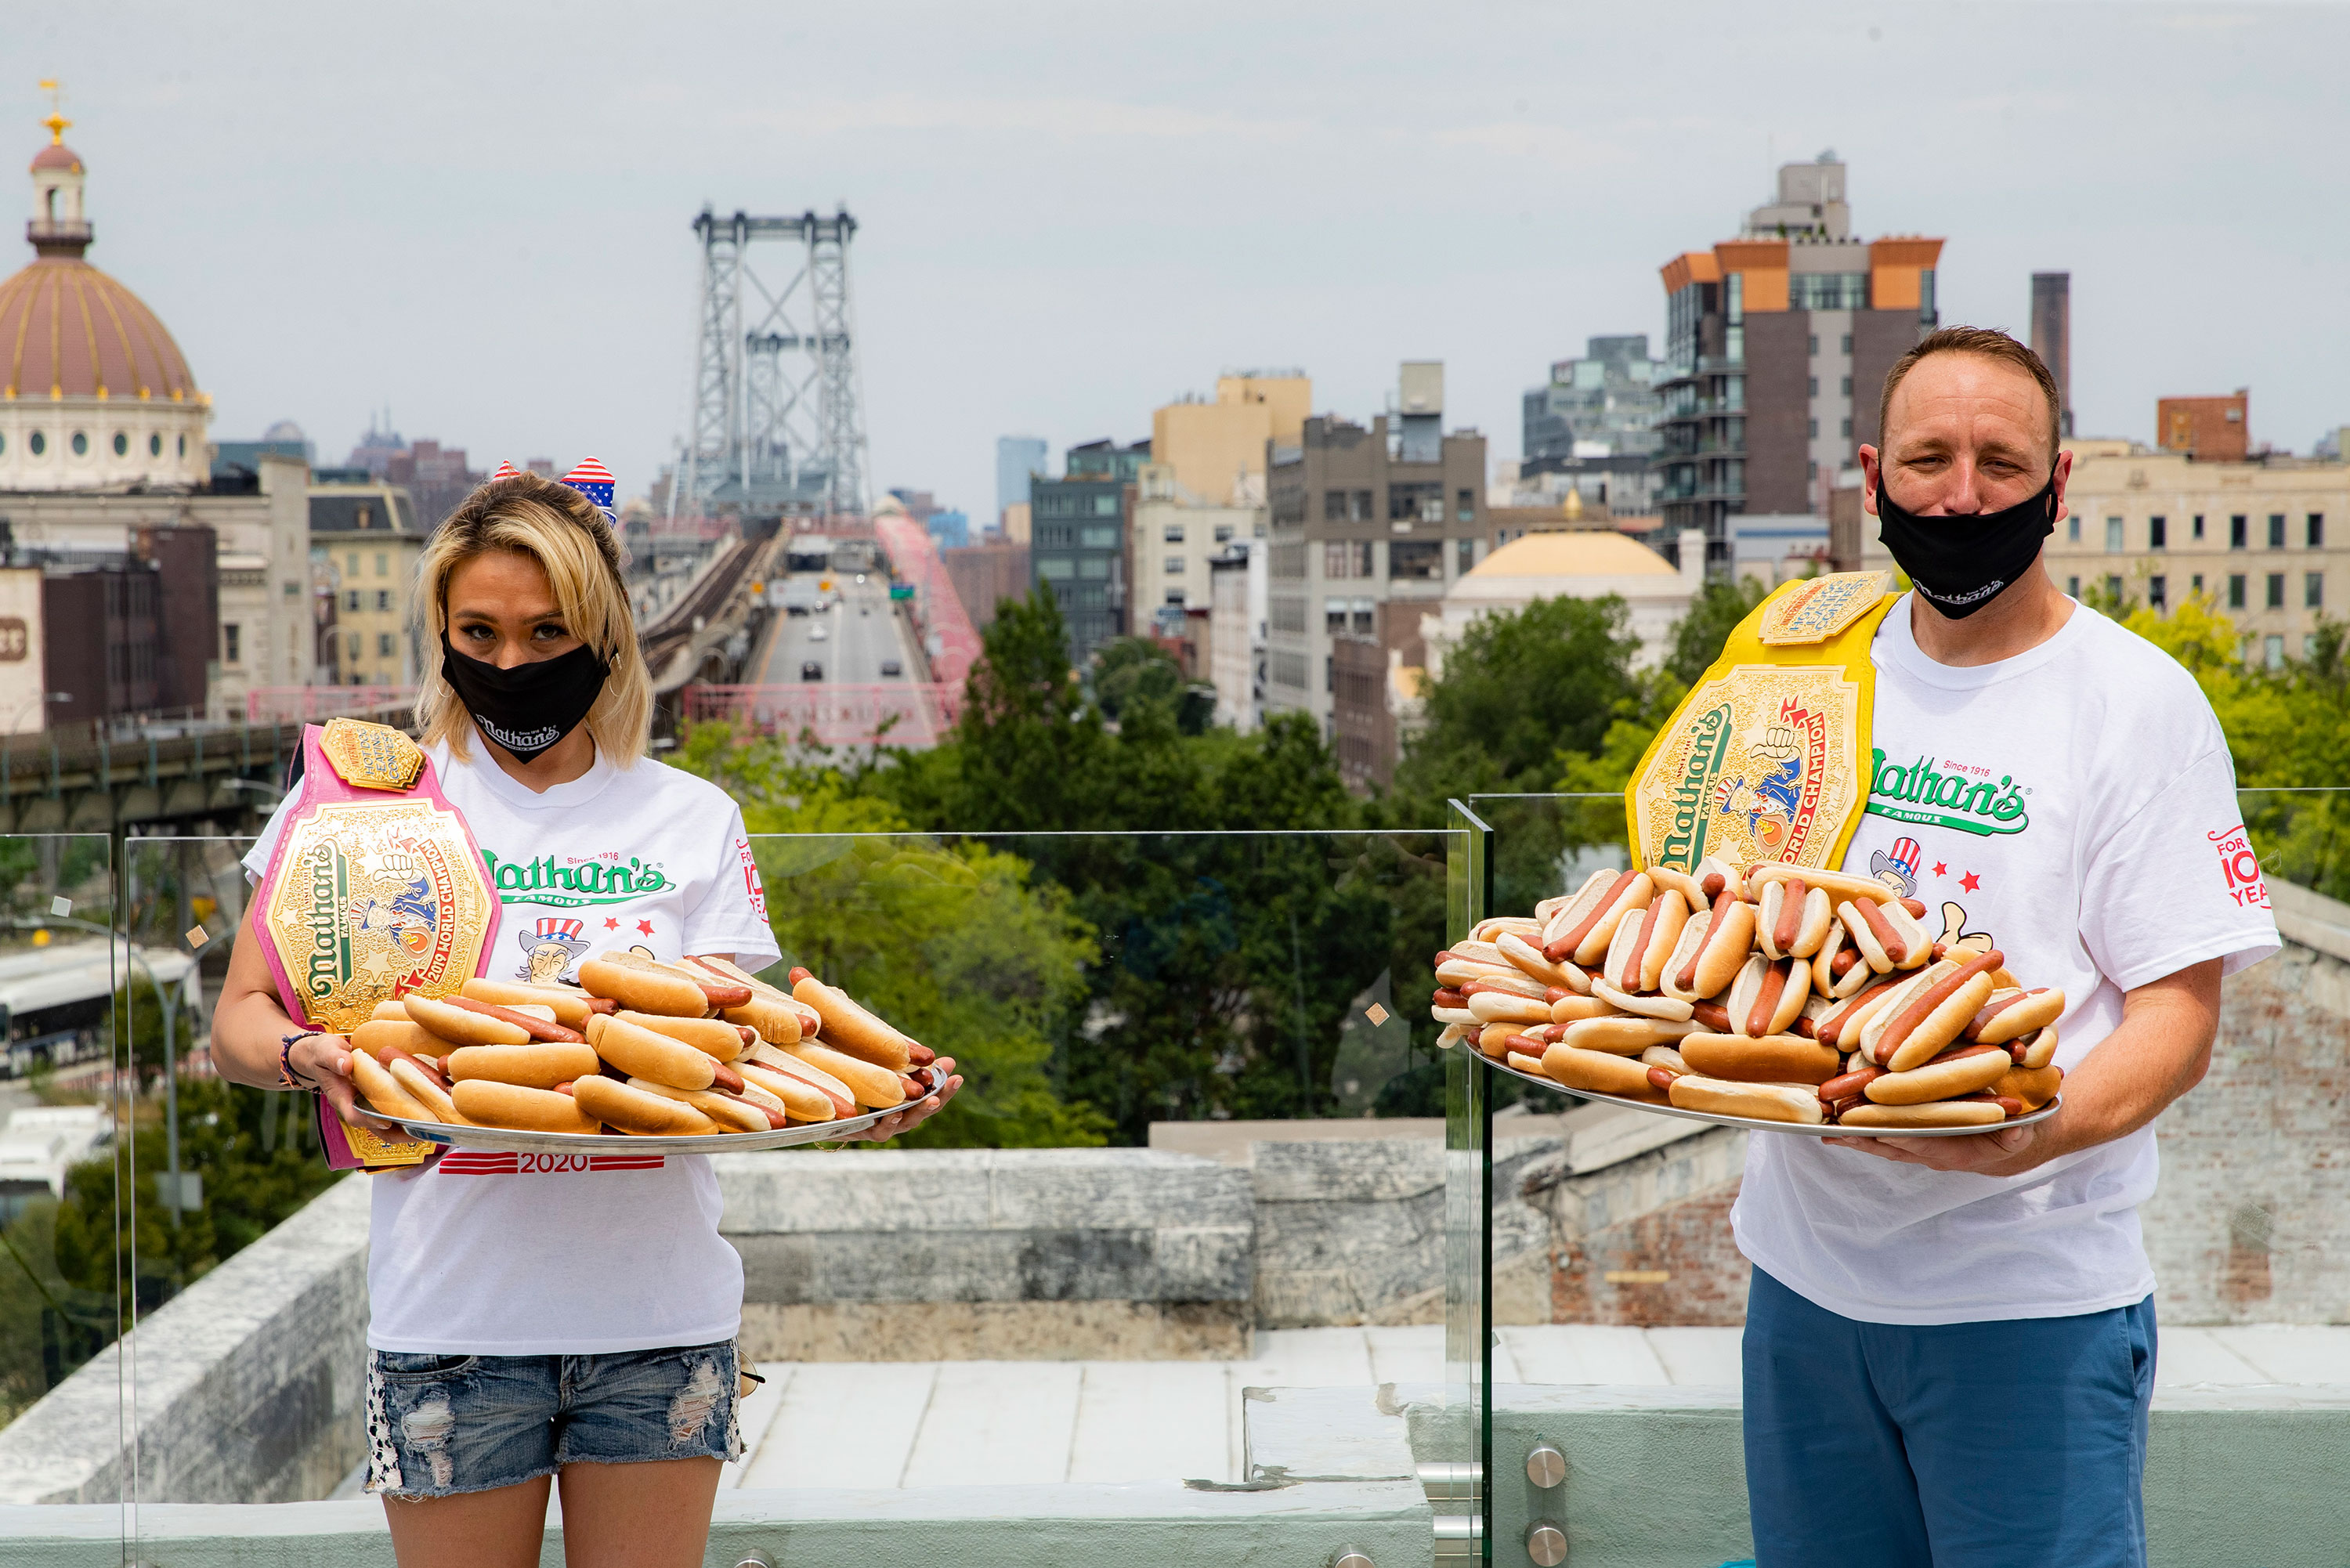 Competitive eaters Miki Sudo, left, and Joey Chestnut, right, pose for a photograph at the weigh-in the day before the Nathan's Famous July Fourth hot dog eating contest on July 3 in New York.